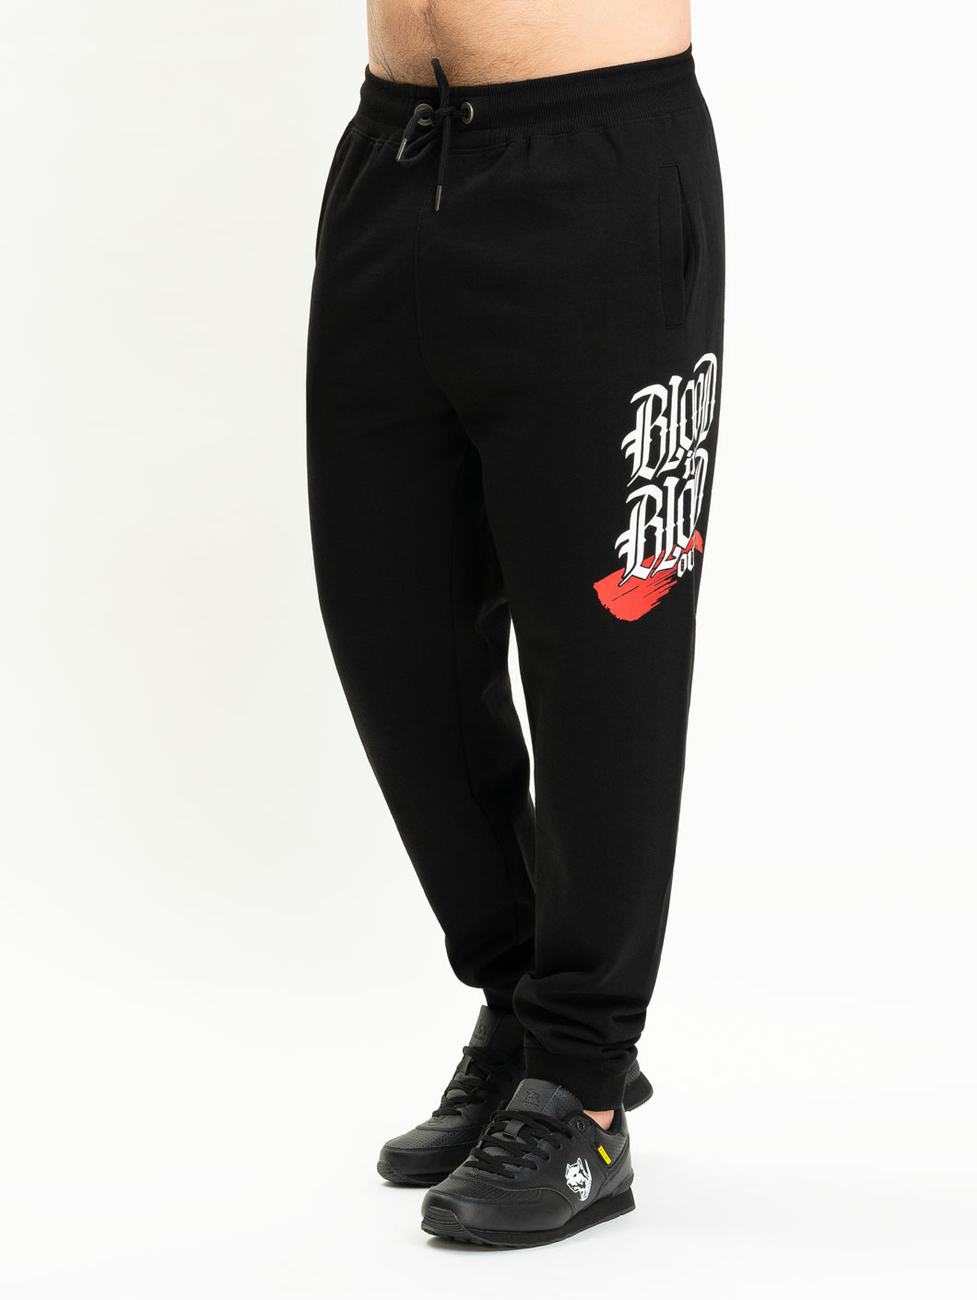 Blood In Blood Out Tranjeros Sweatpants 2XL